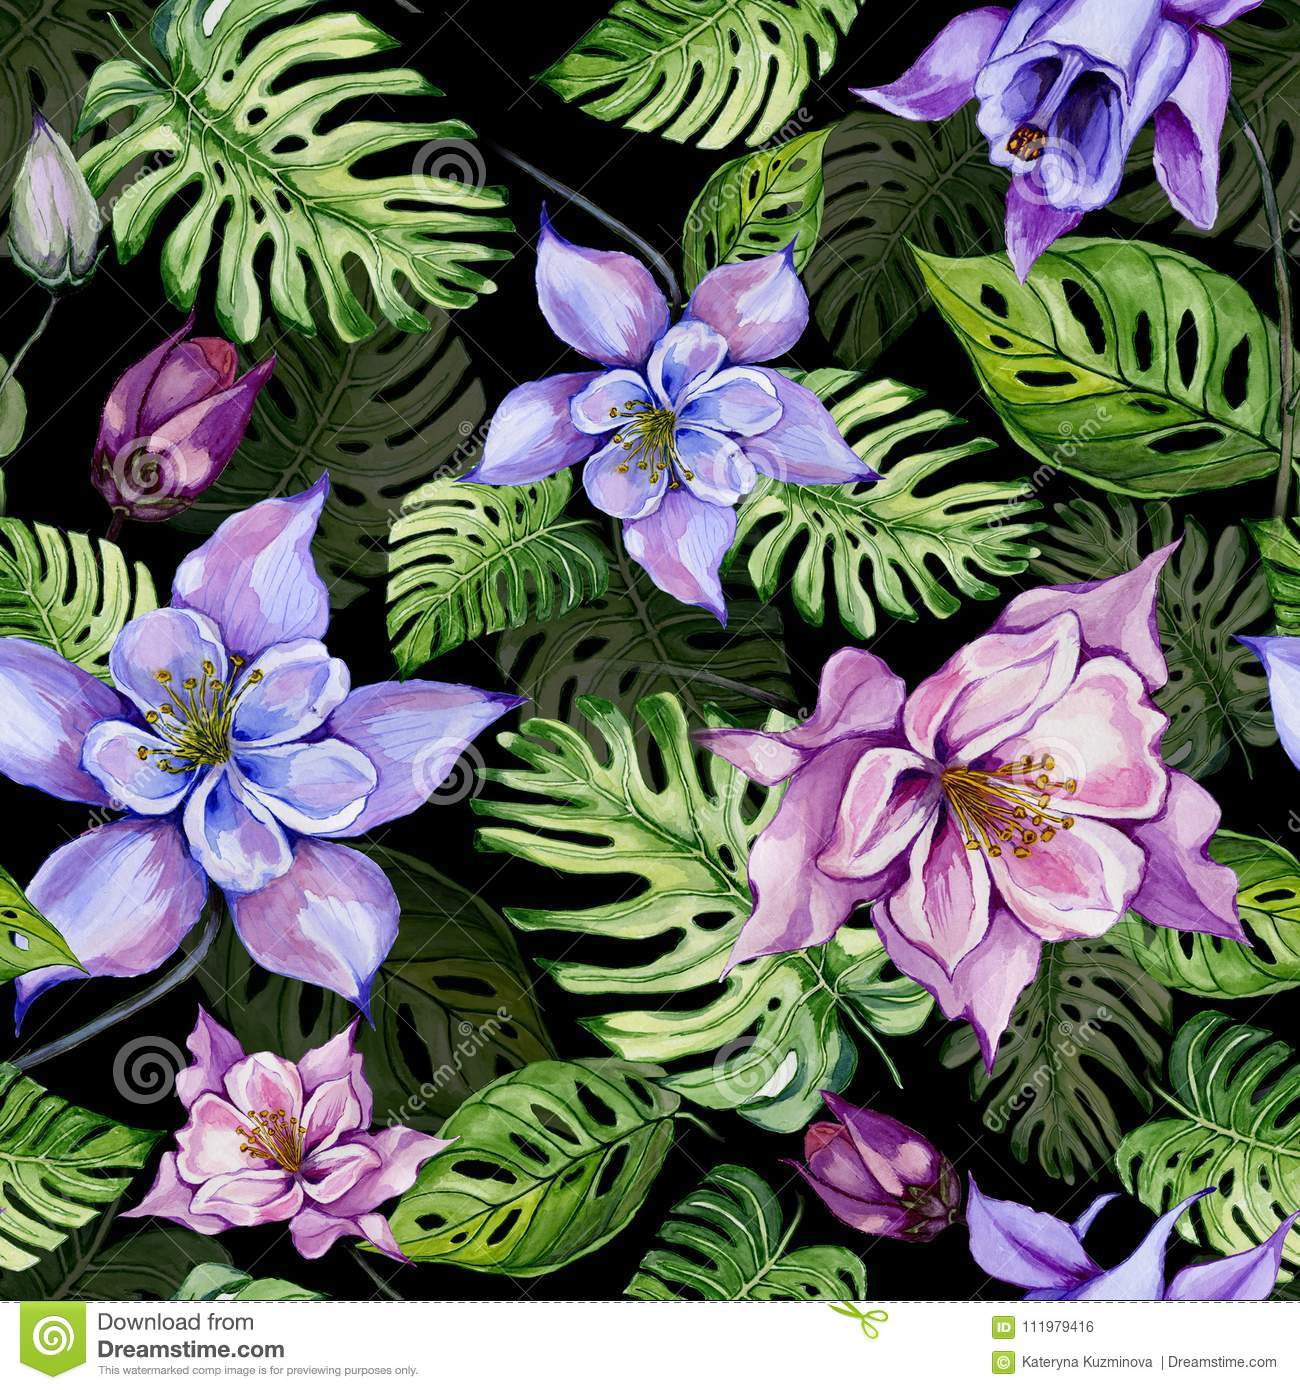 Beautiful bright columbine flowers or aquilegia and exotic monstera beautiful bright columbine flowers or aquilegia and exotic monstera leaves on black background watercolor painting tropical seamless floral pattern izmirmasajfo Image collections